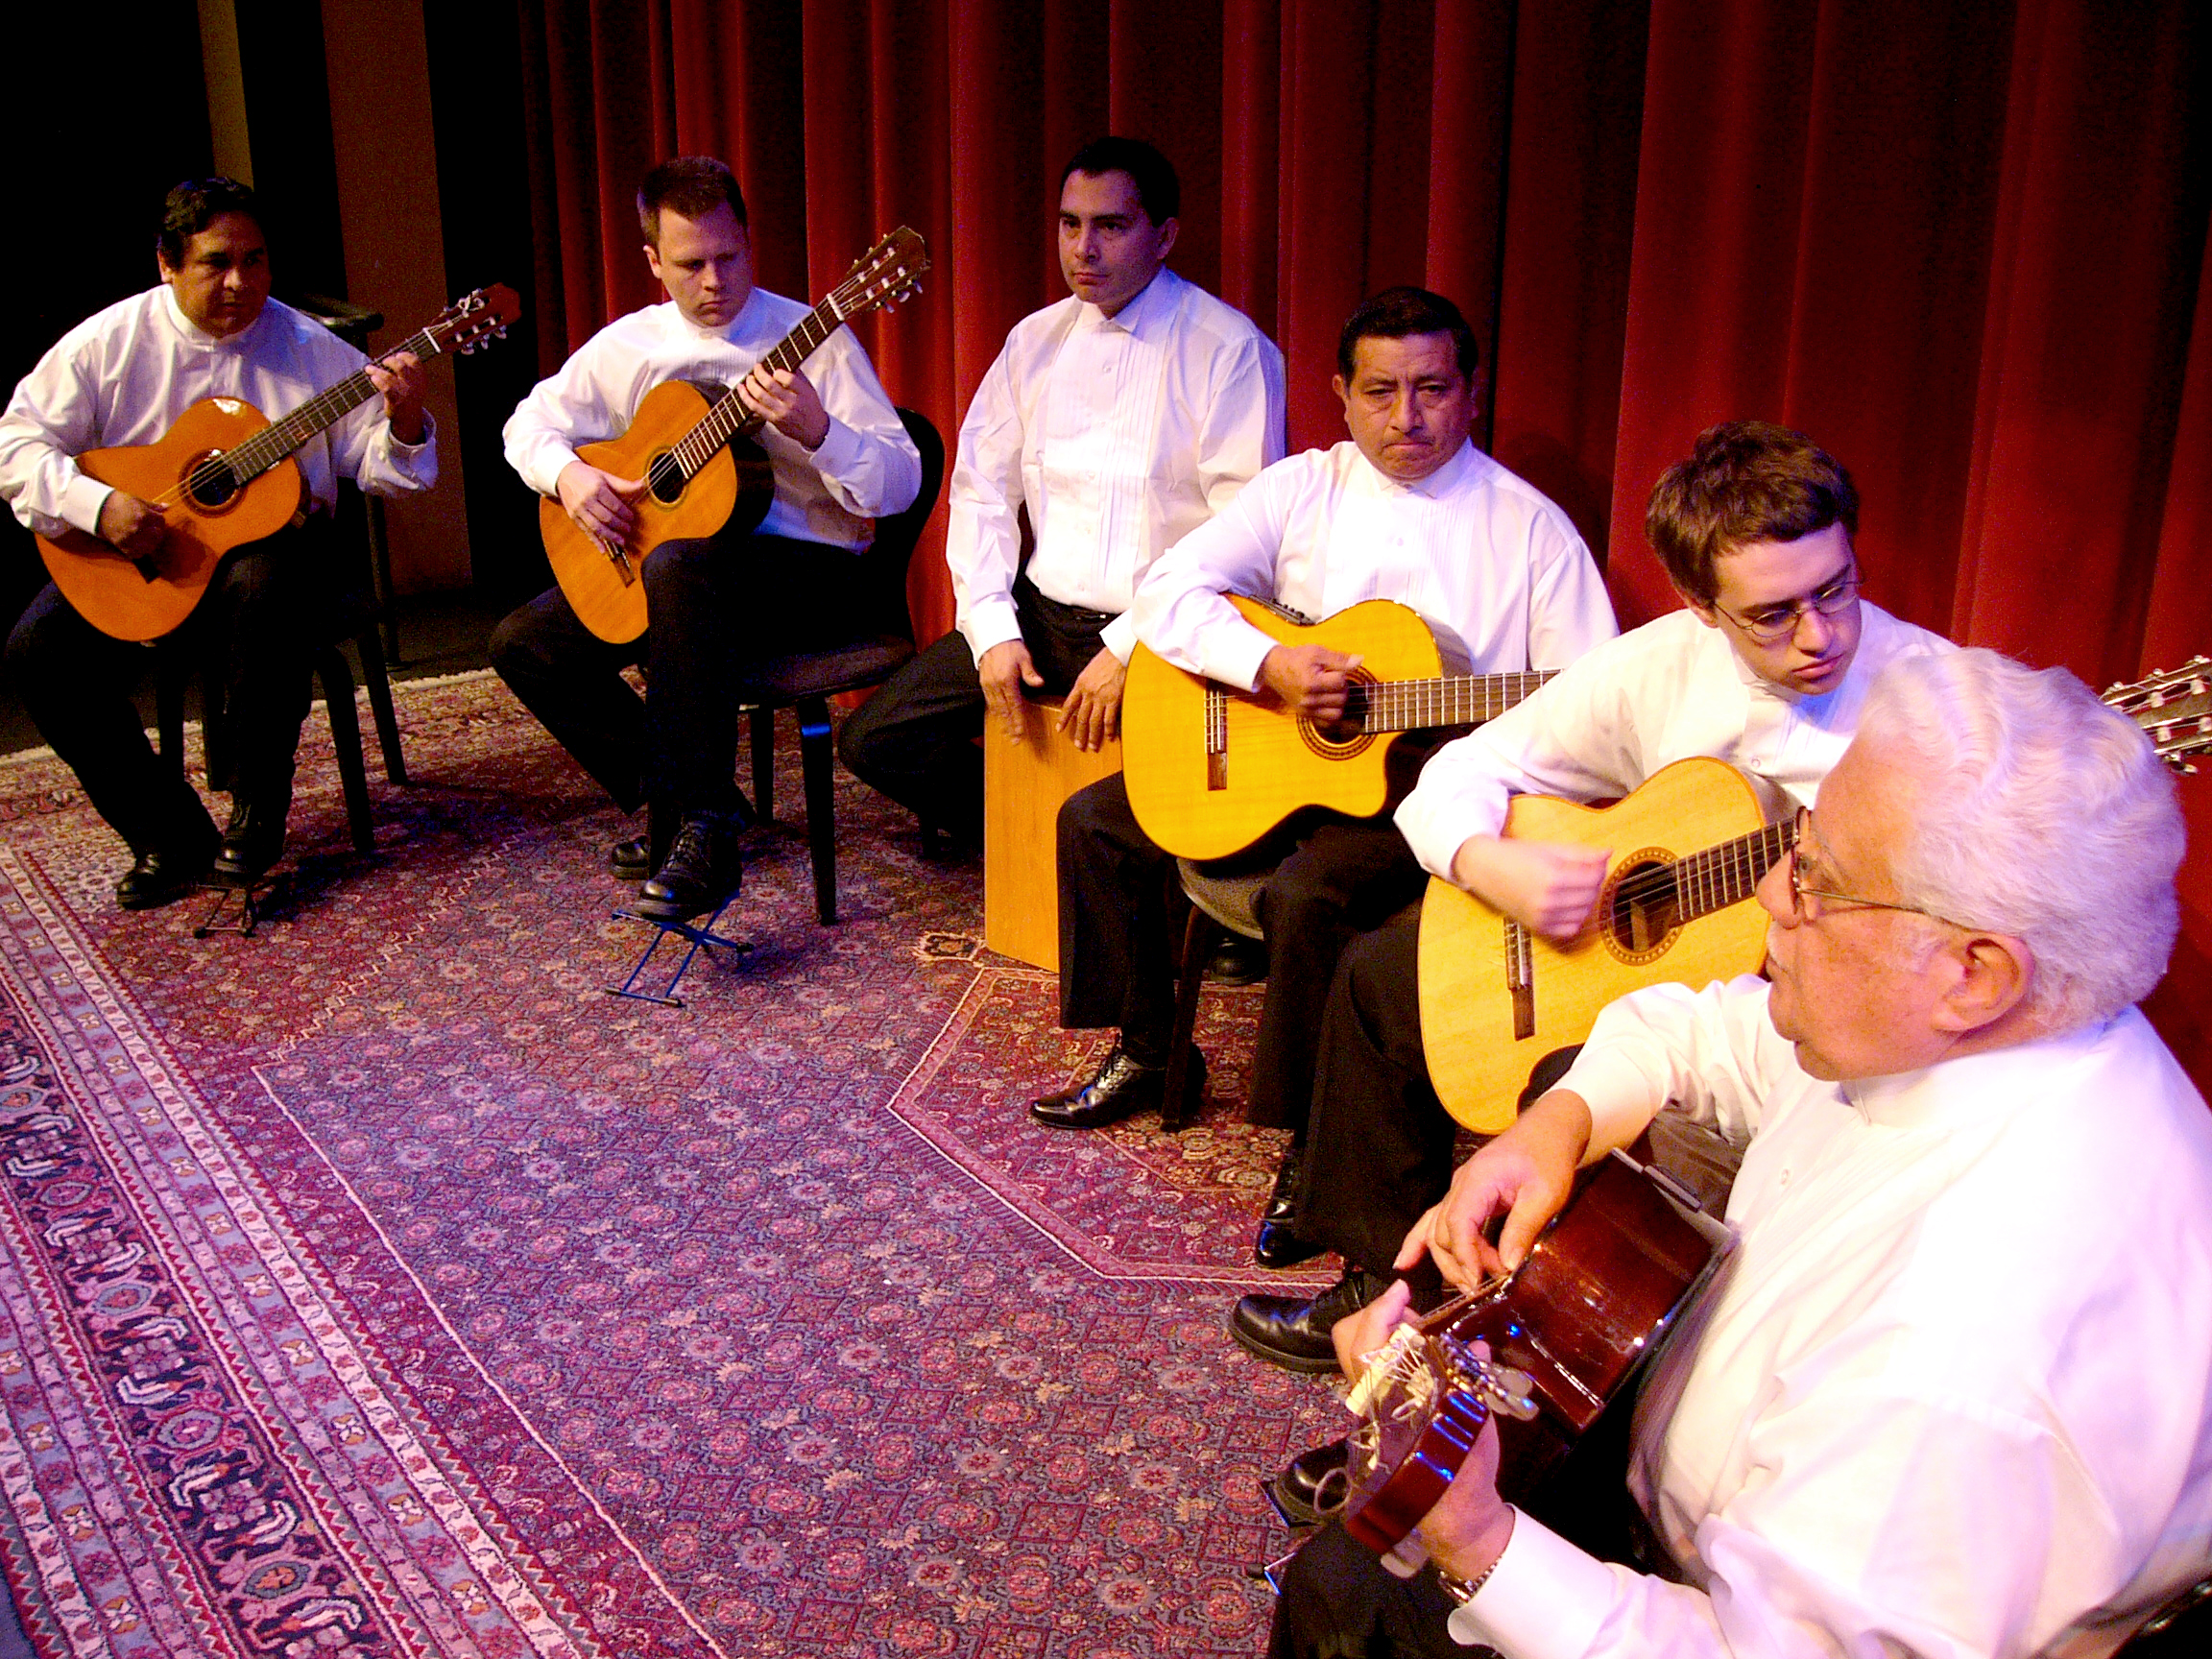 The first version of Los Guitarristas in 2004, l-r: Anibal Bellido, Neil Dixon Smith, Raul Fernandez, Pedro Verastagui, Rob Clearfield, Alfonso Chacon. Photo by Mr. King.